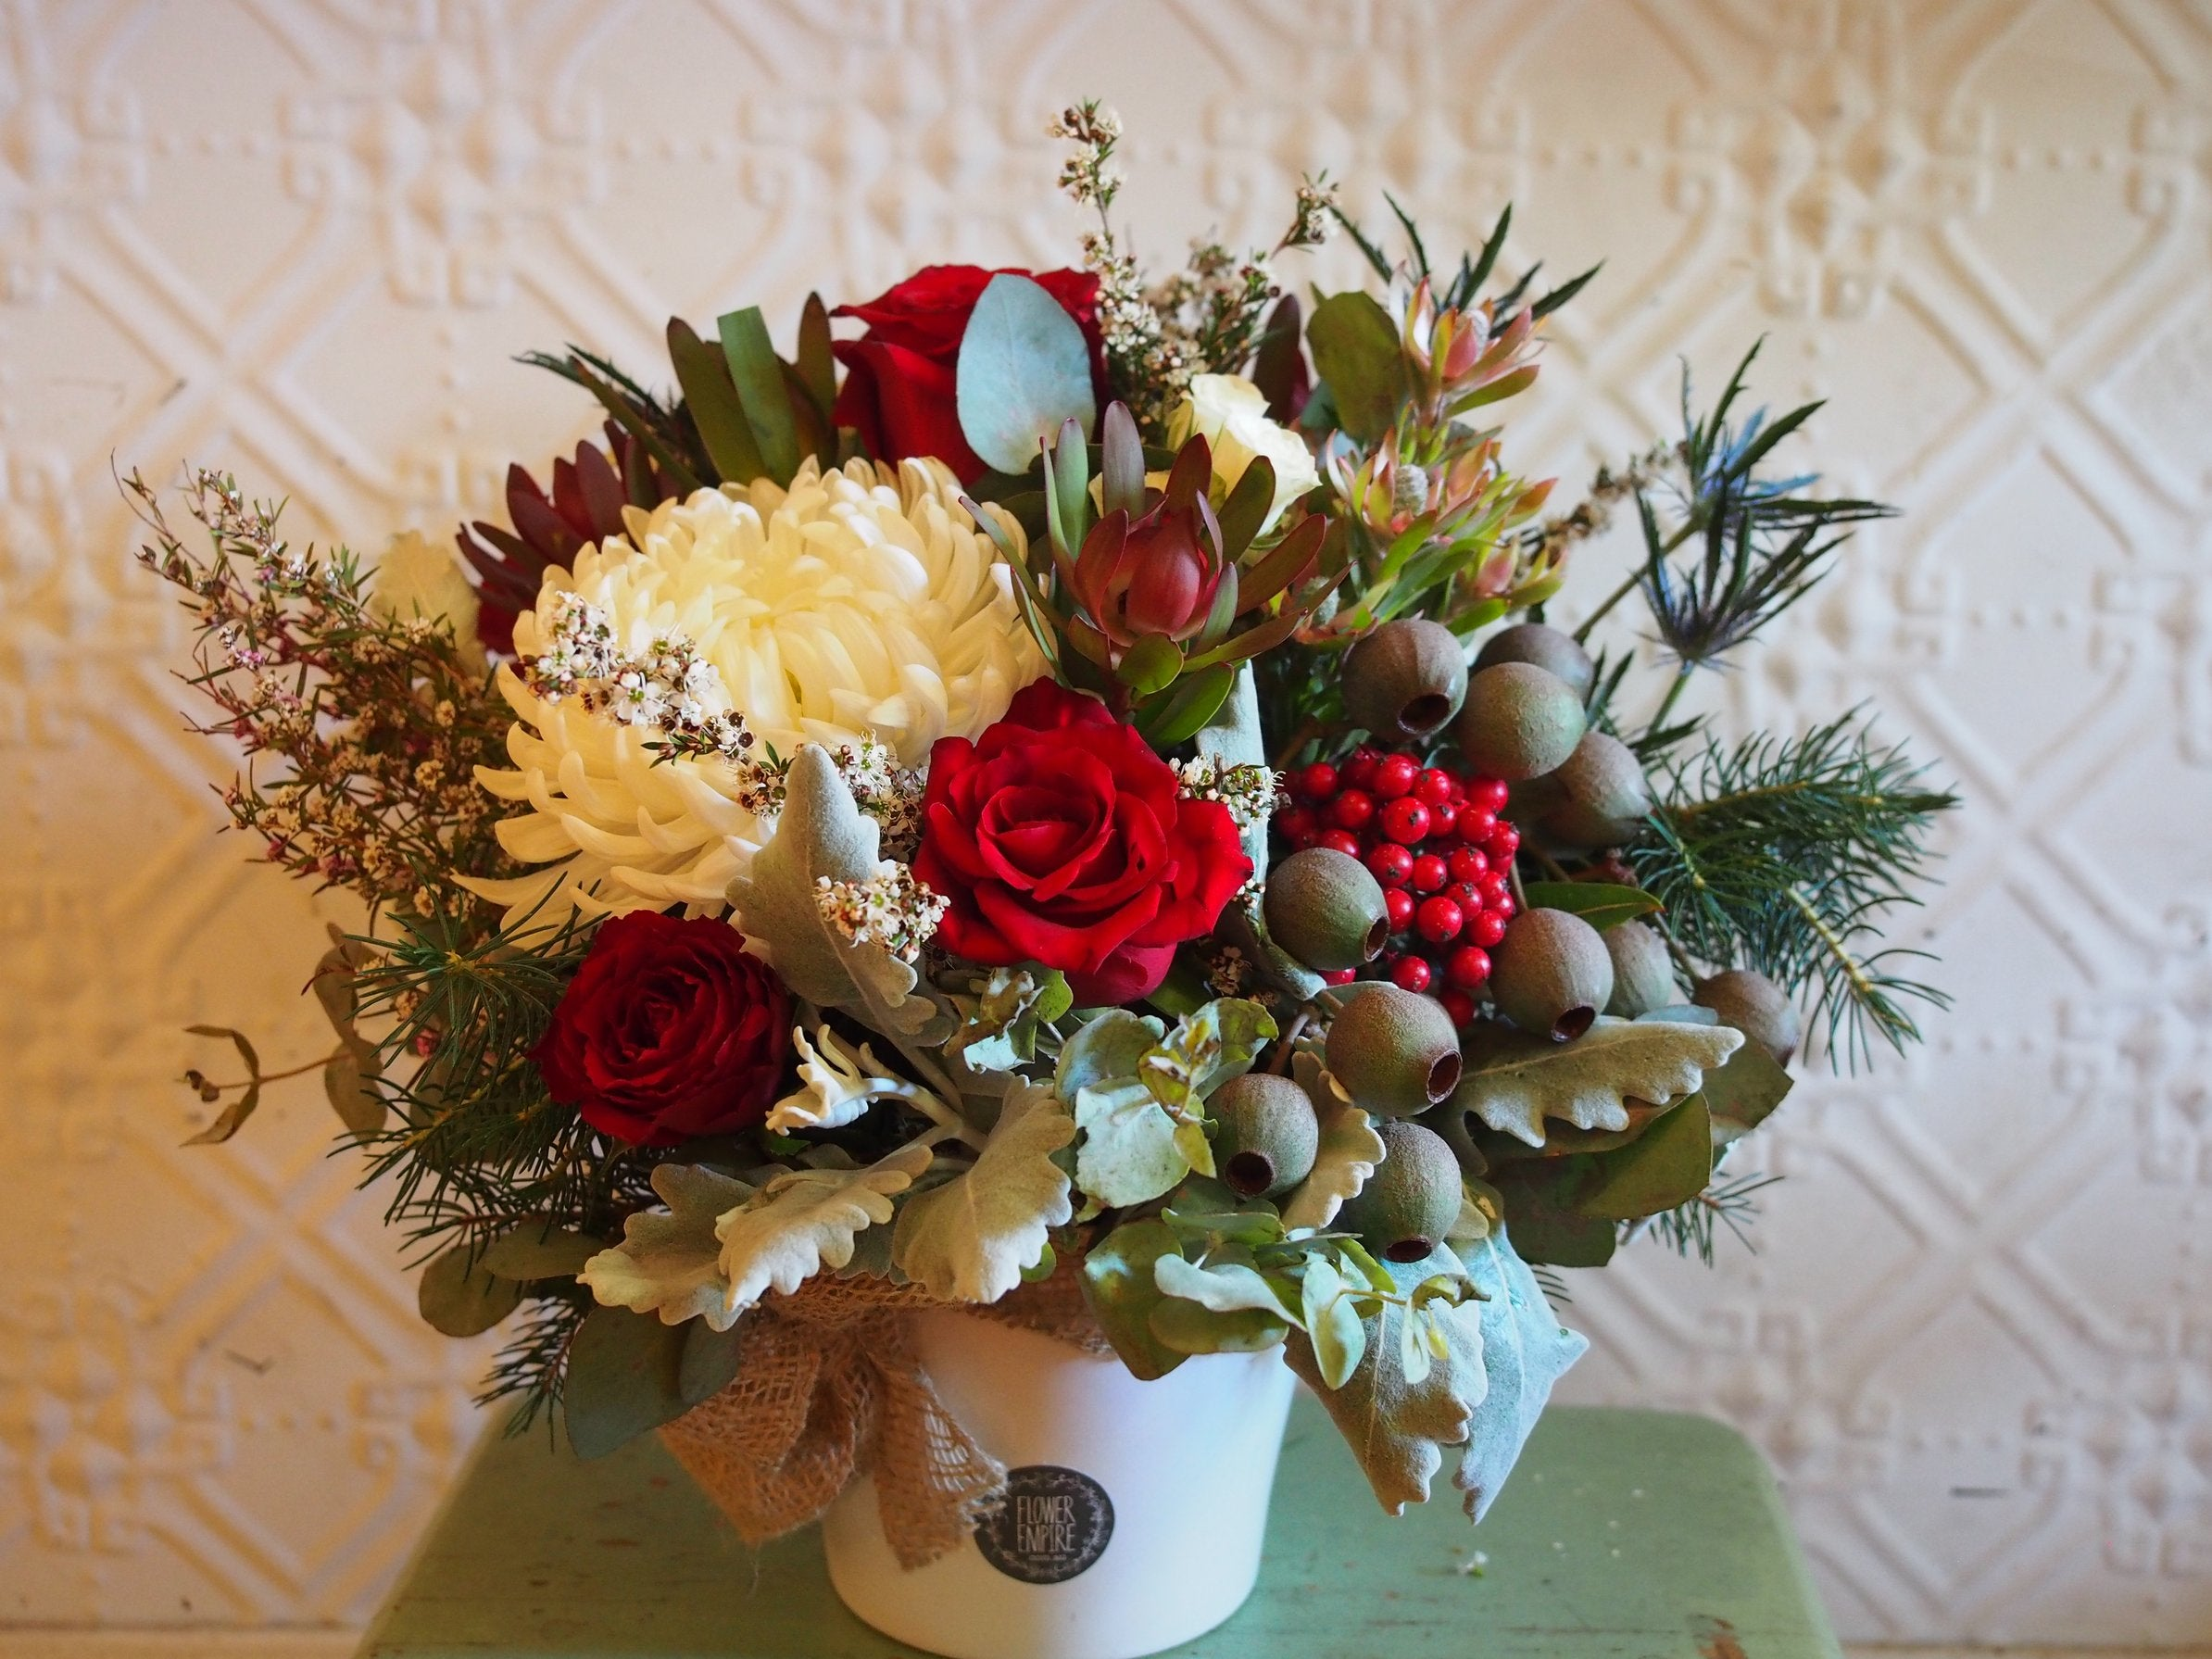 Christmas Arrangement In A White Ceramic Pot